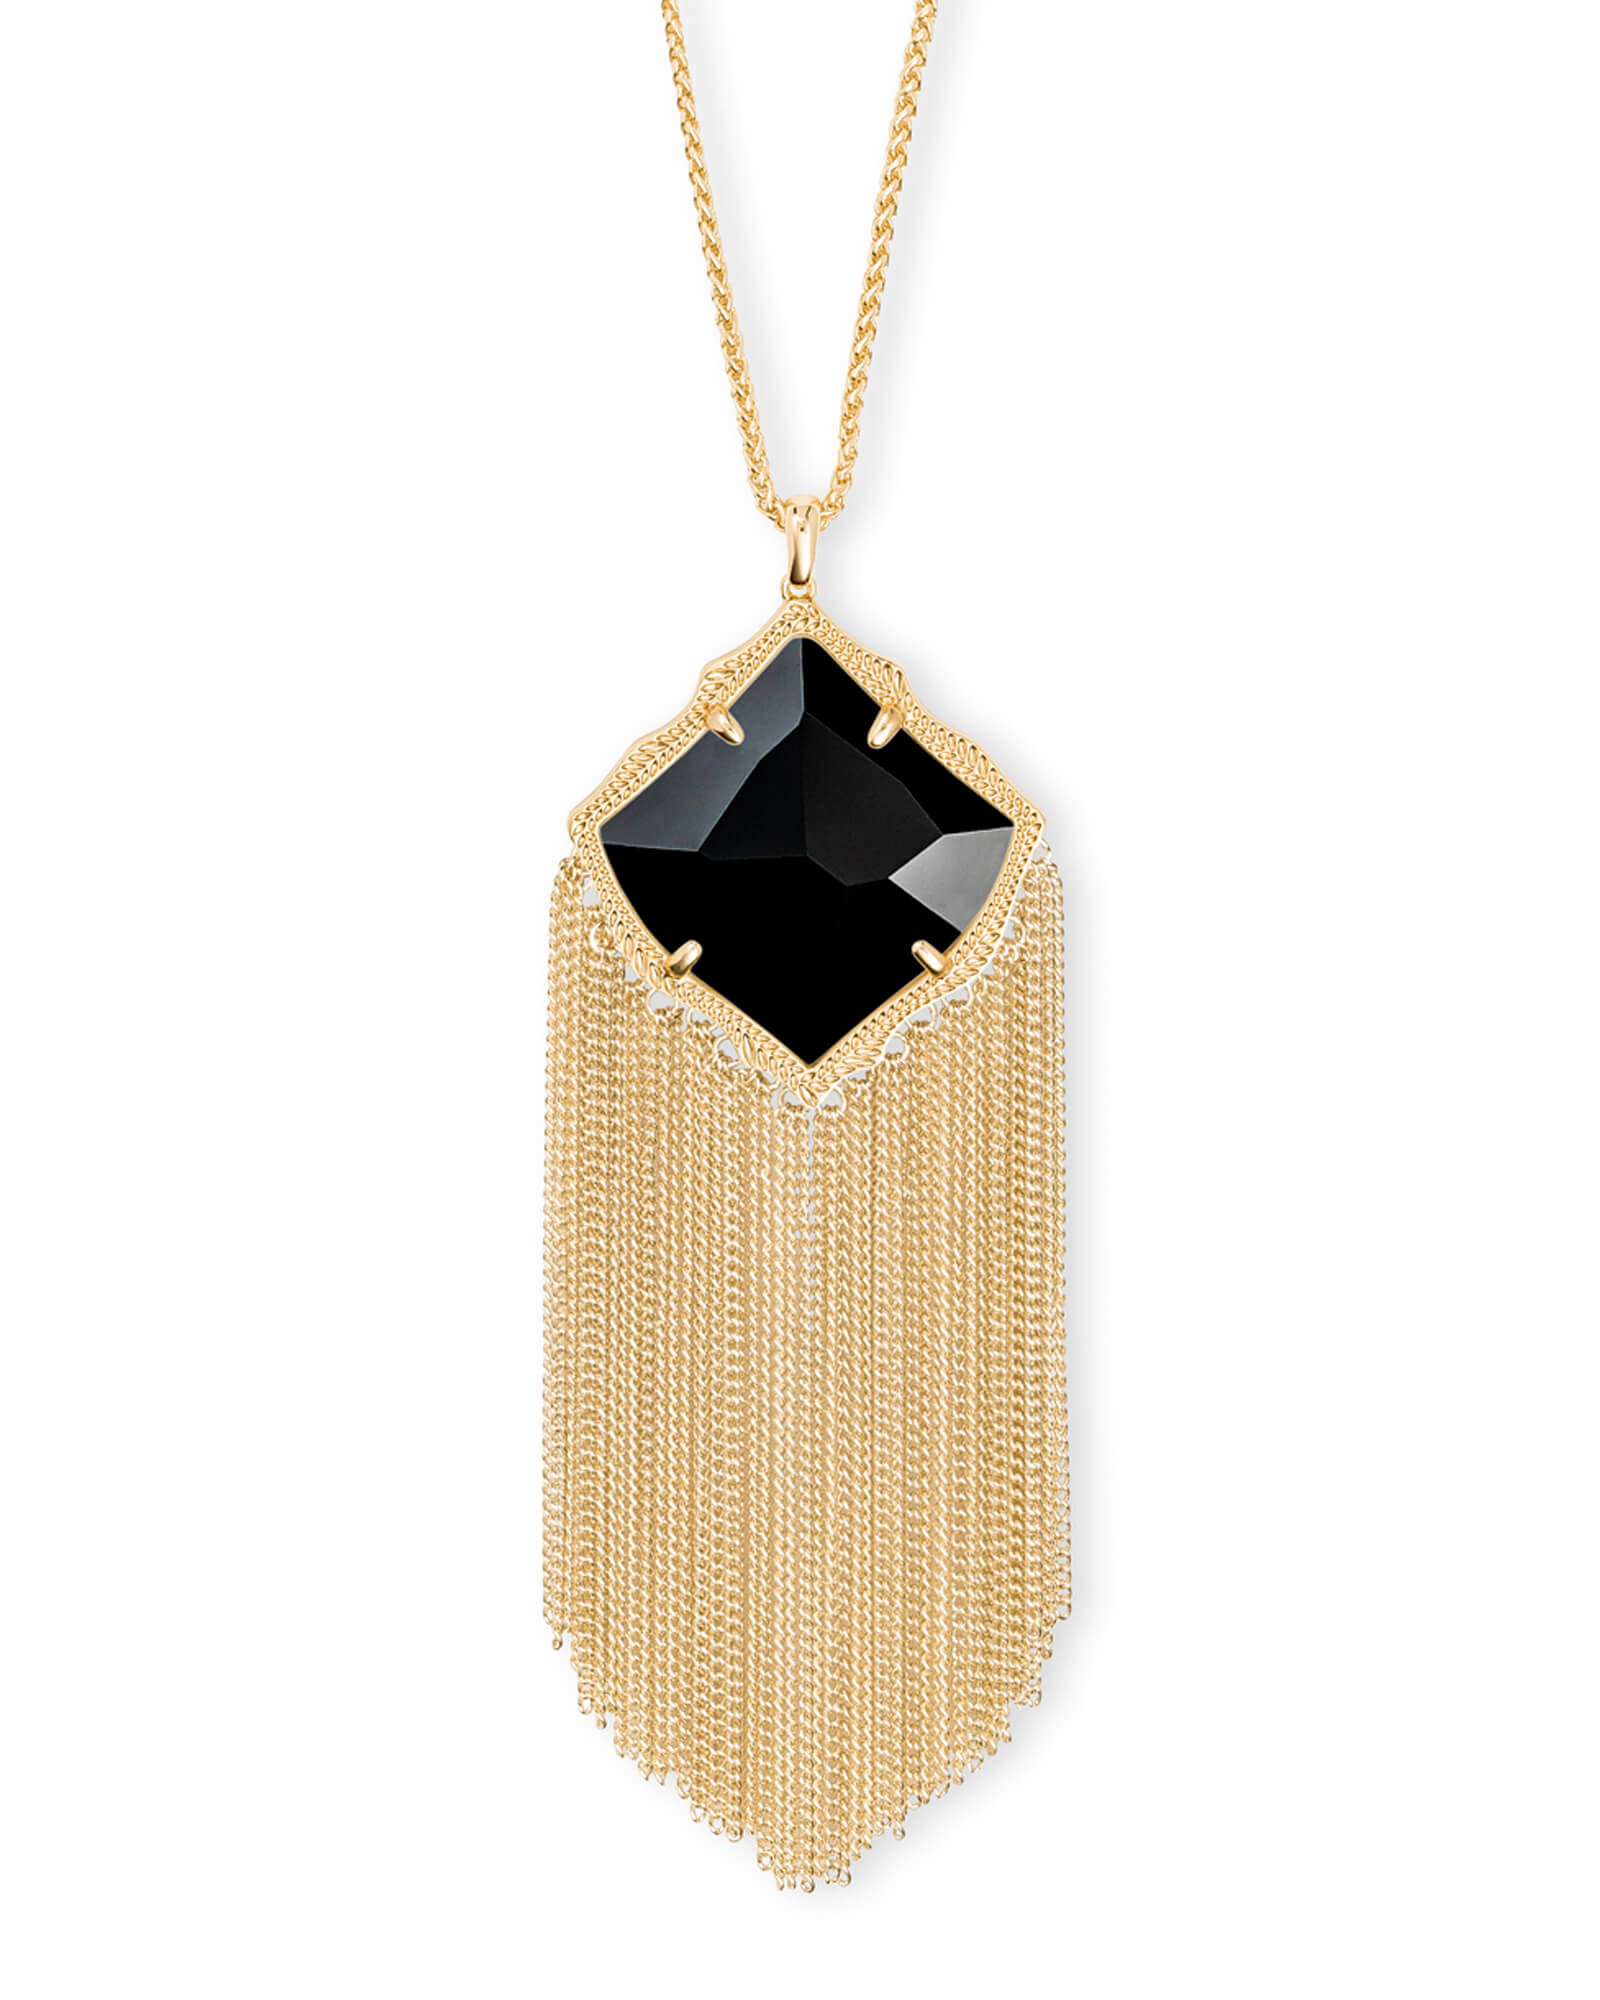 Kingston Long Pendant Necklace in Gold